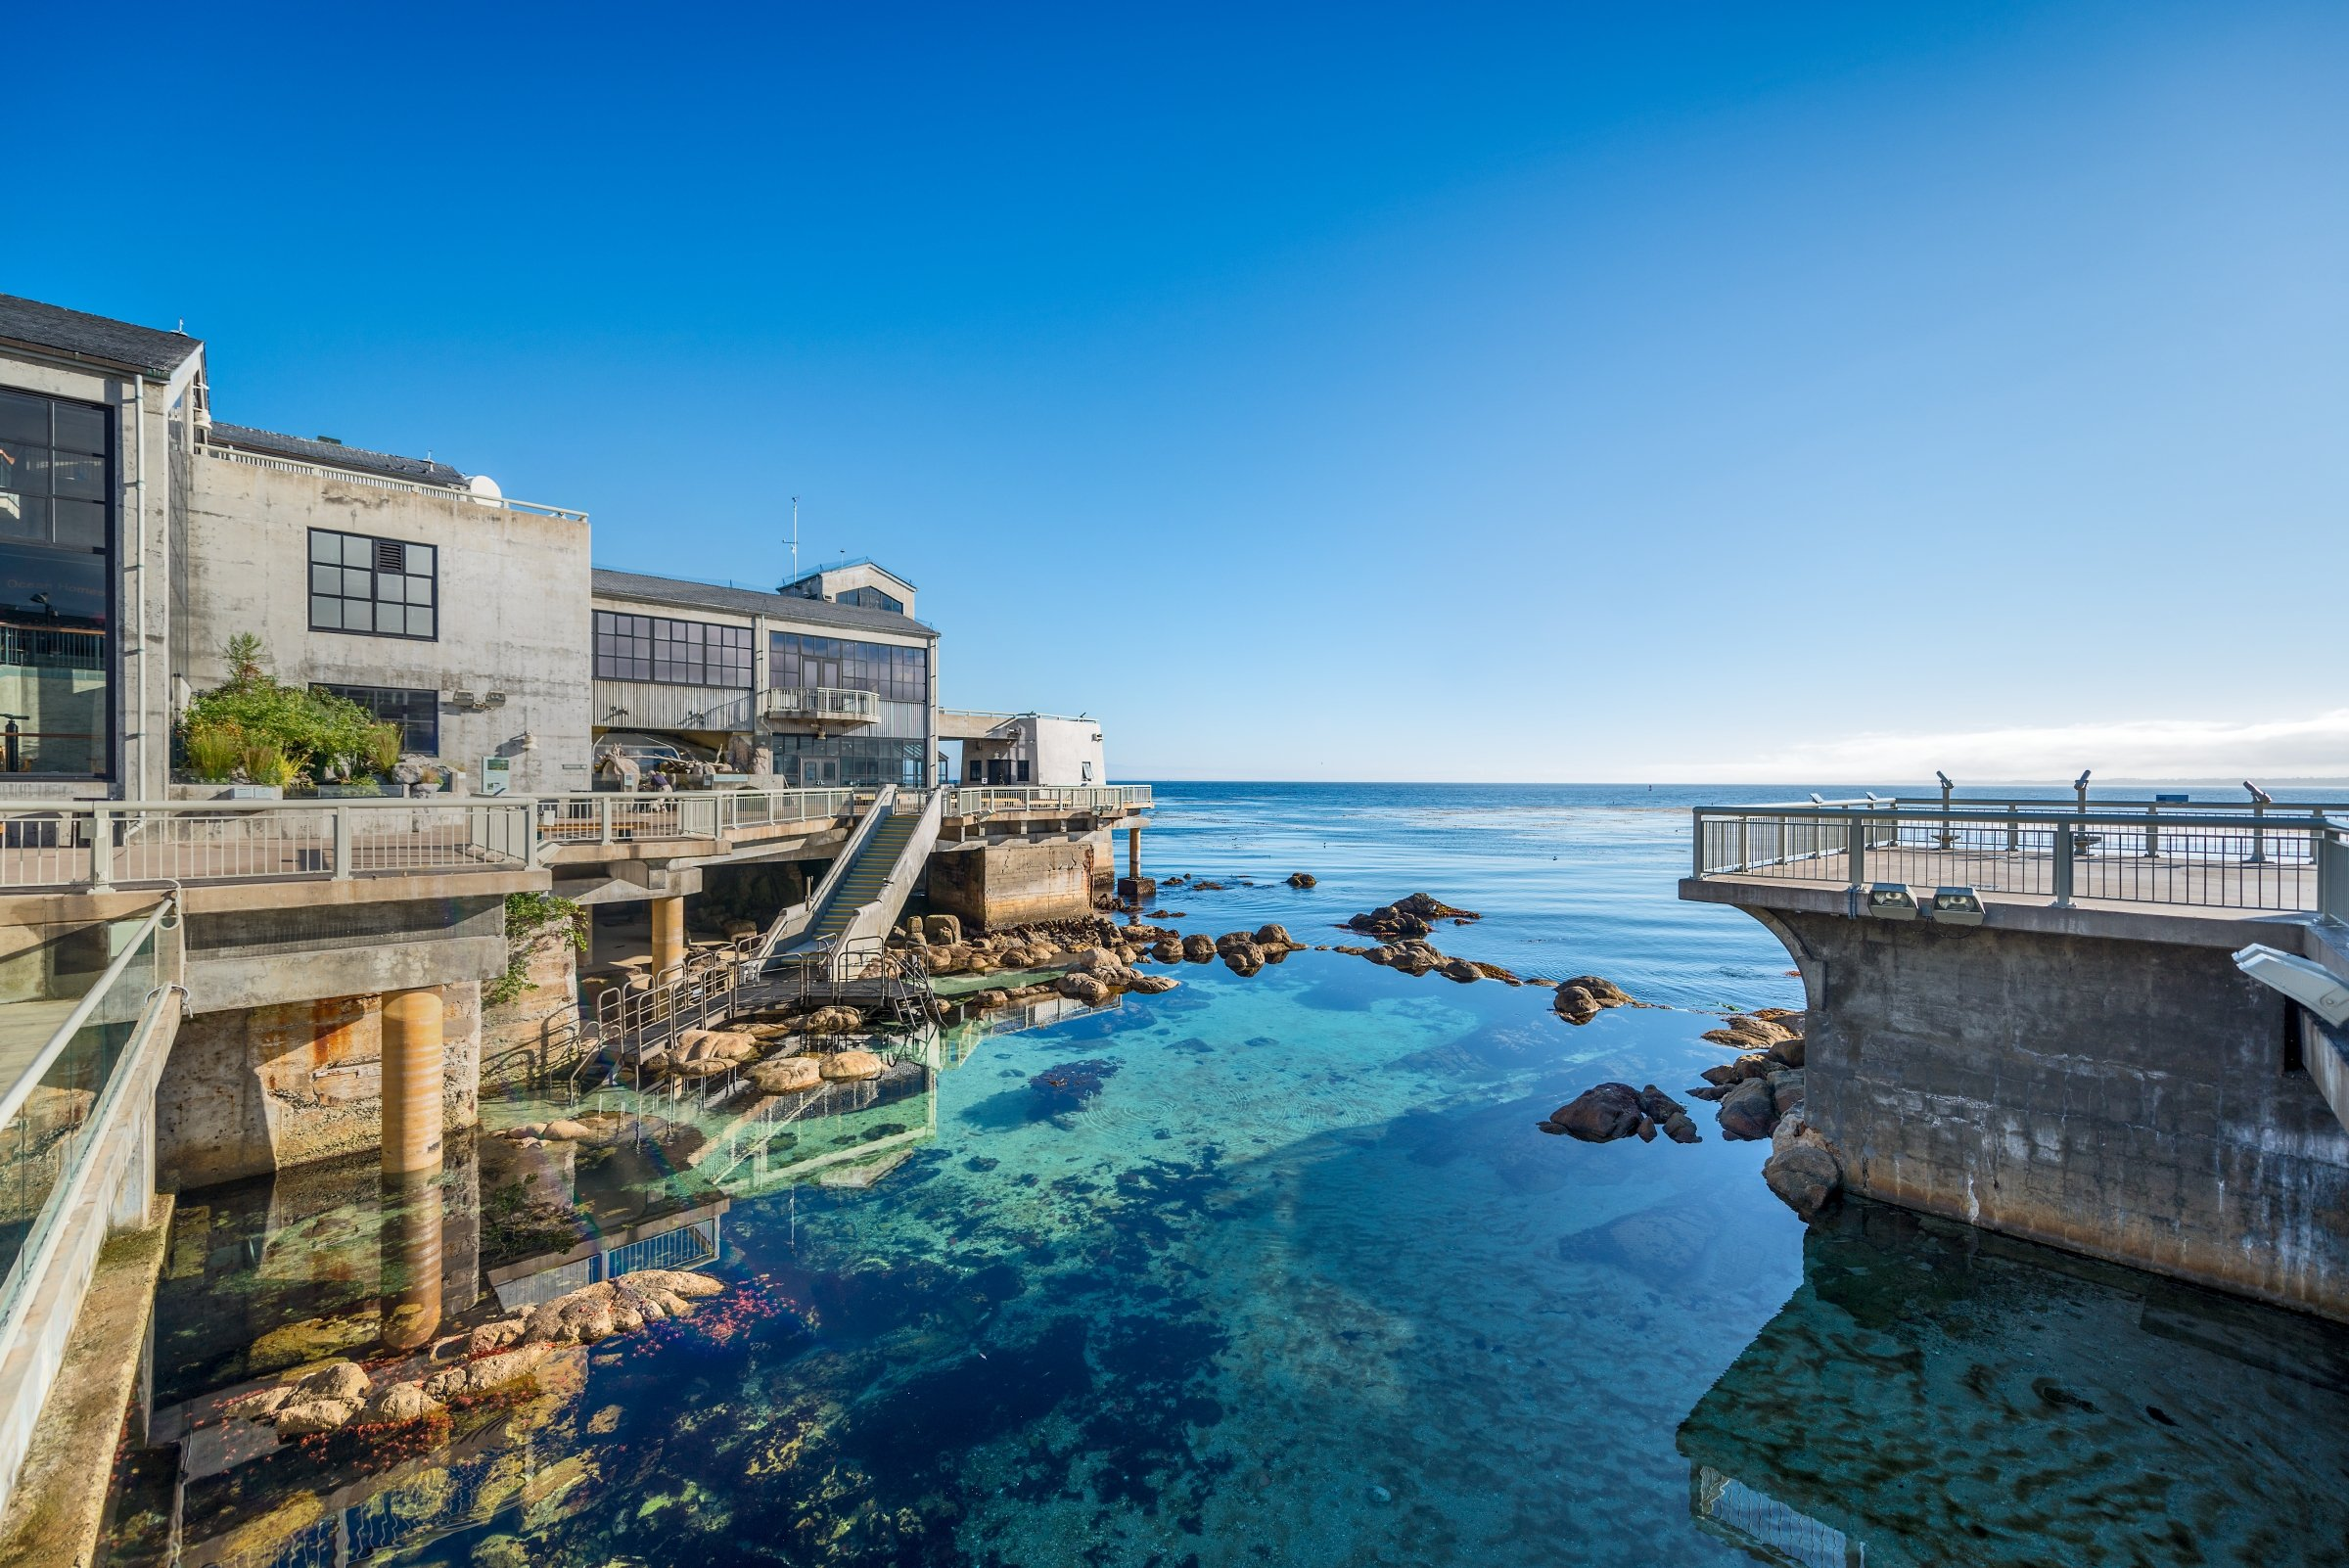 Scenic shot of the Great Tide Pool and exterior back deck of the Monterey Bay Aquarium.